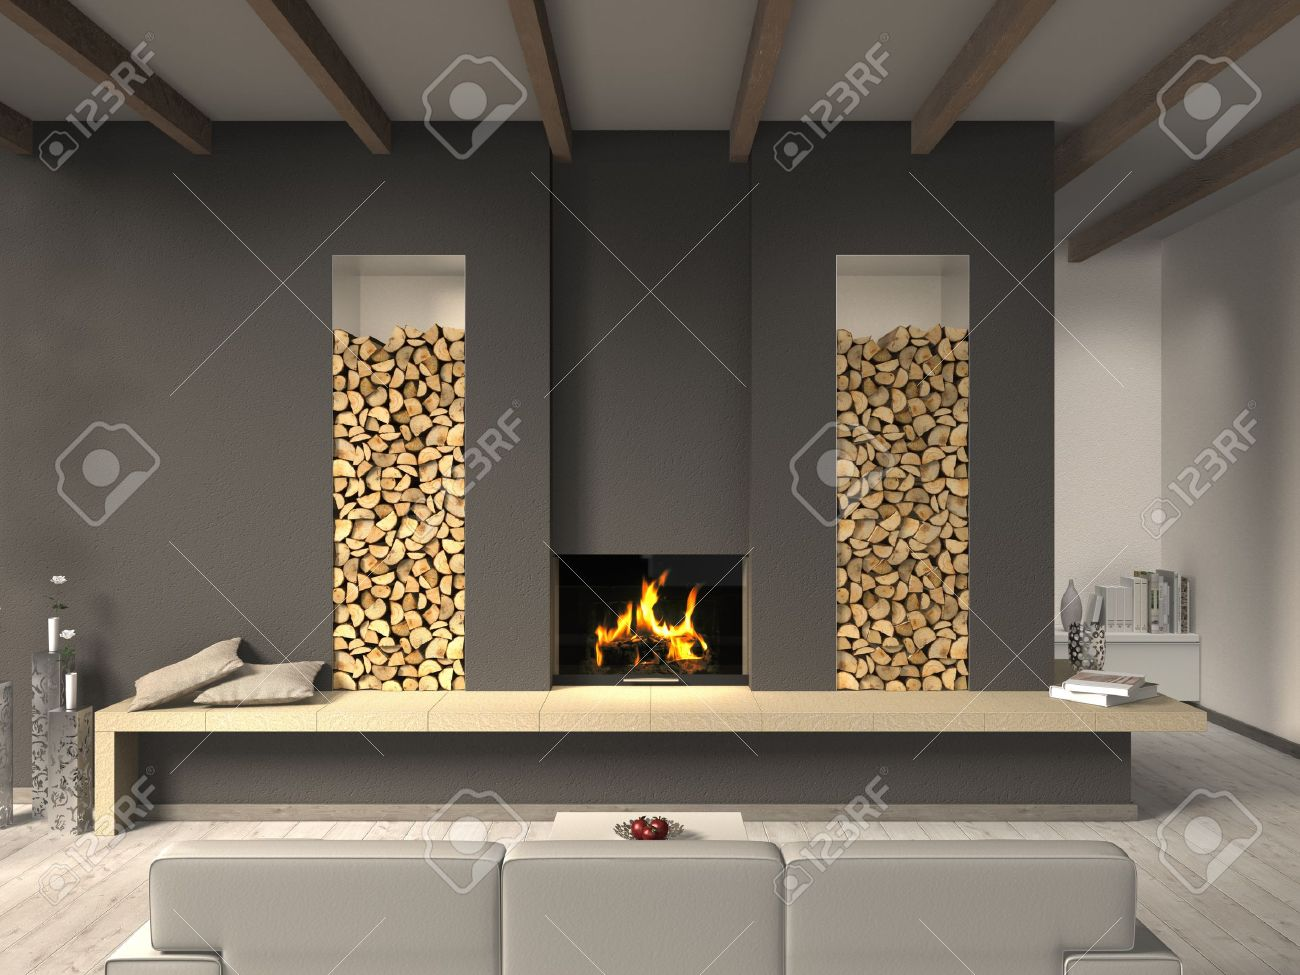 Living Room Country Style Fictitious Country Style Living Room With Fireplace Stock Photo